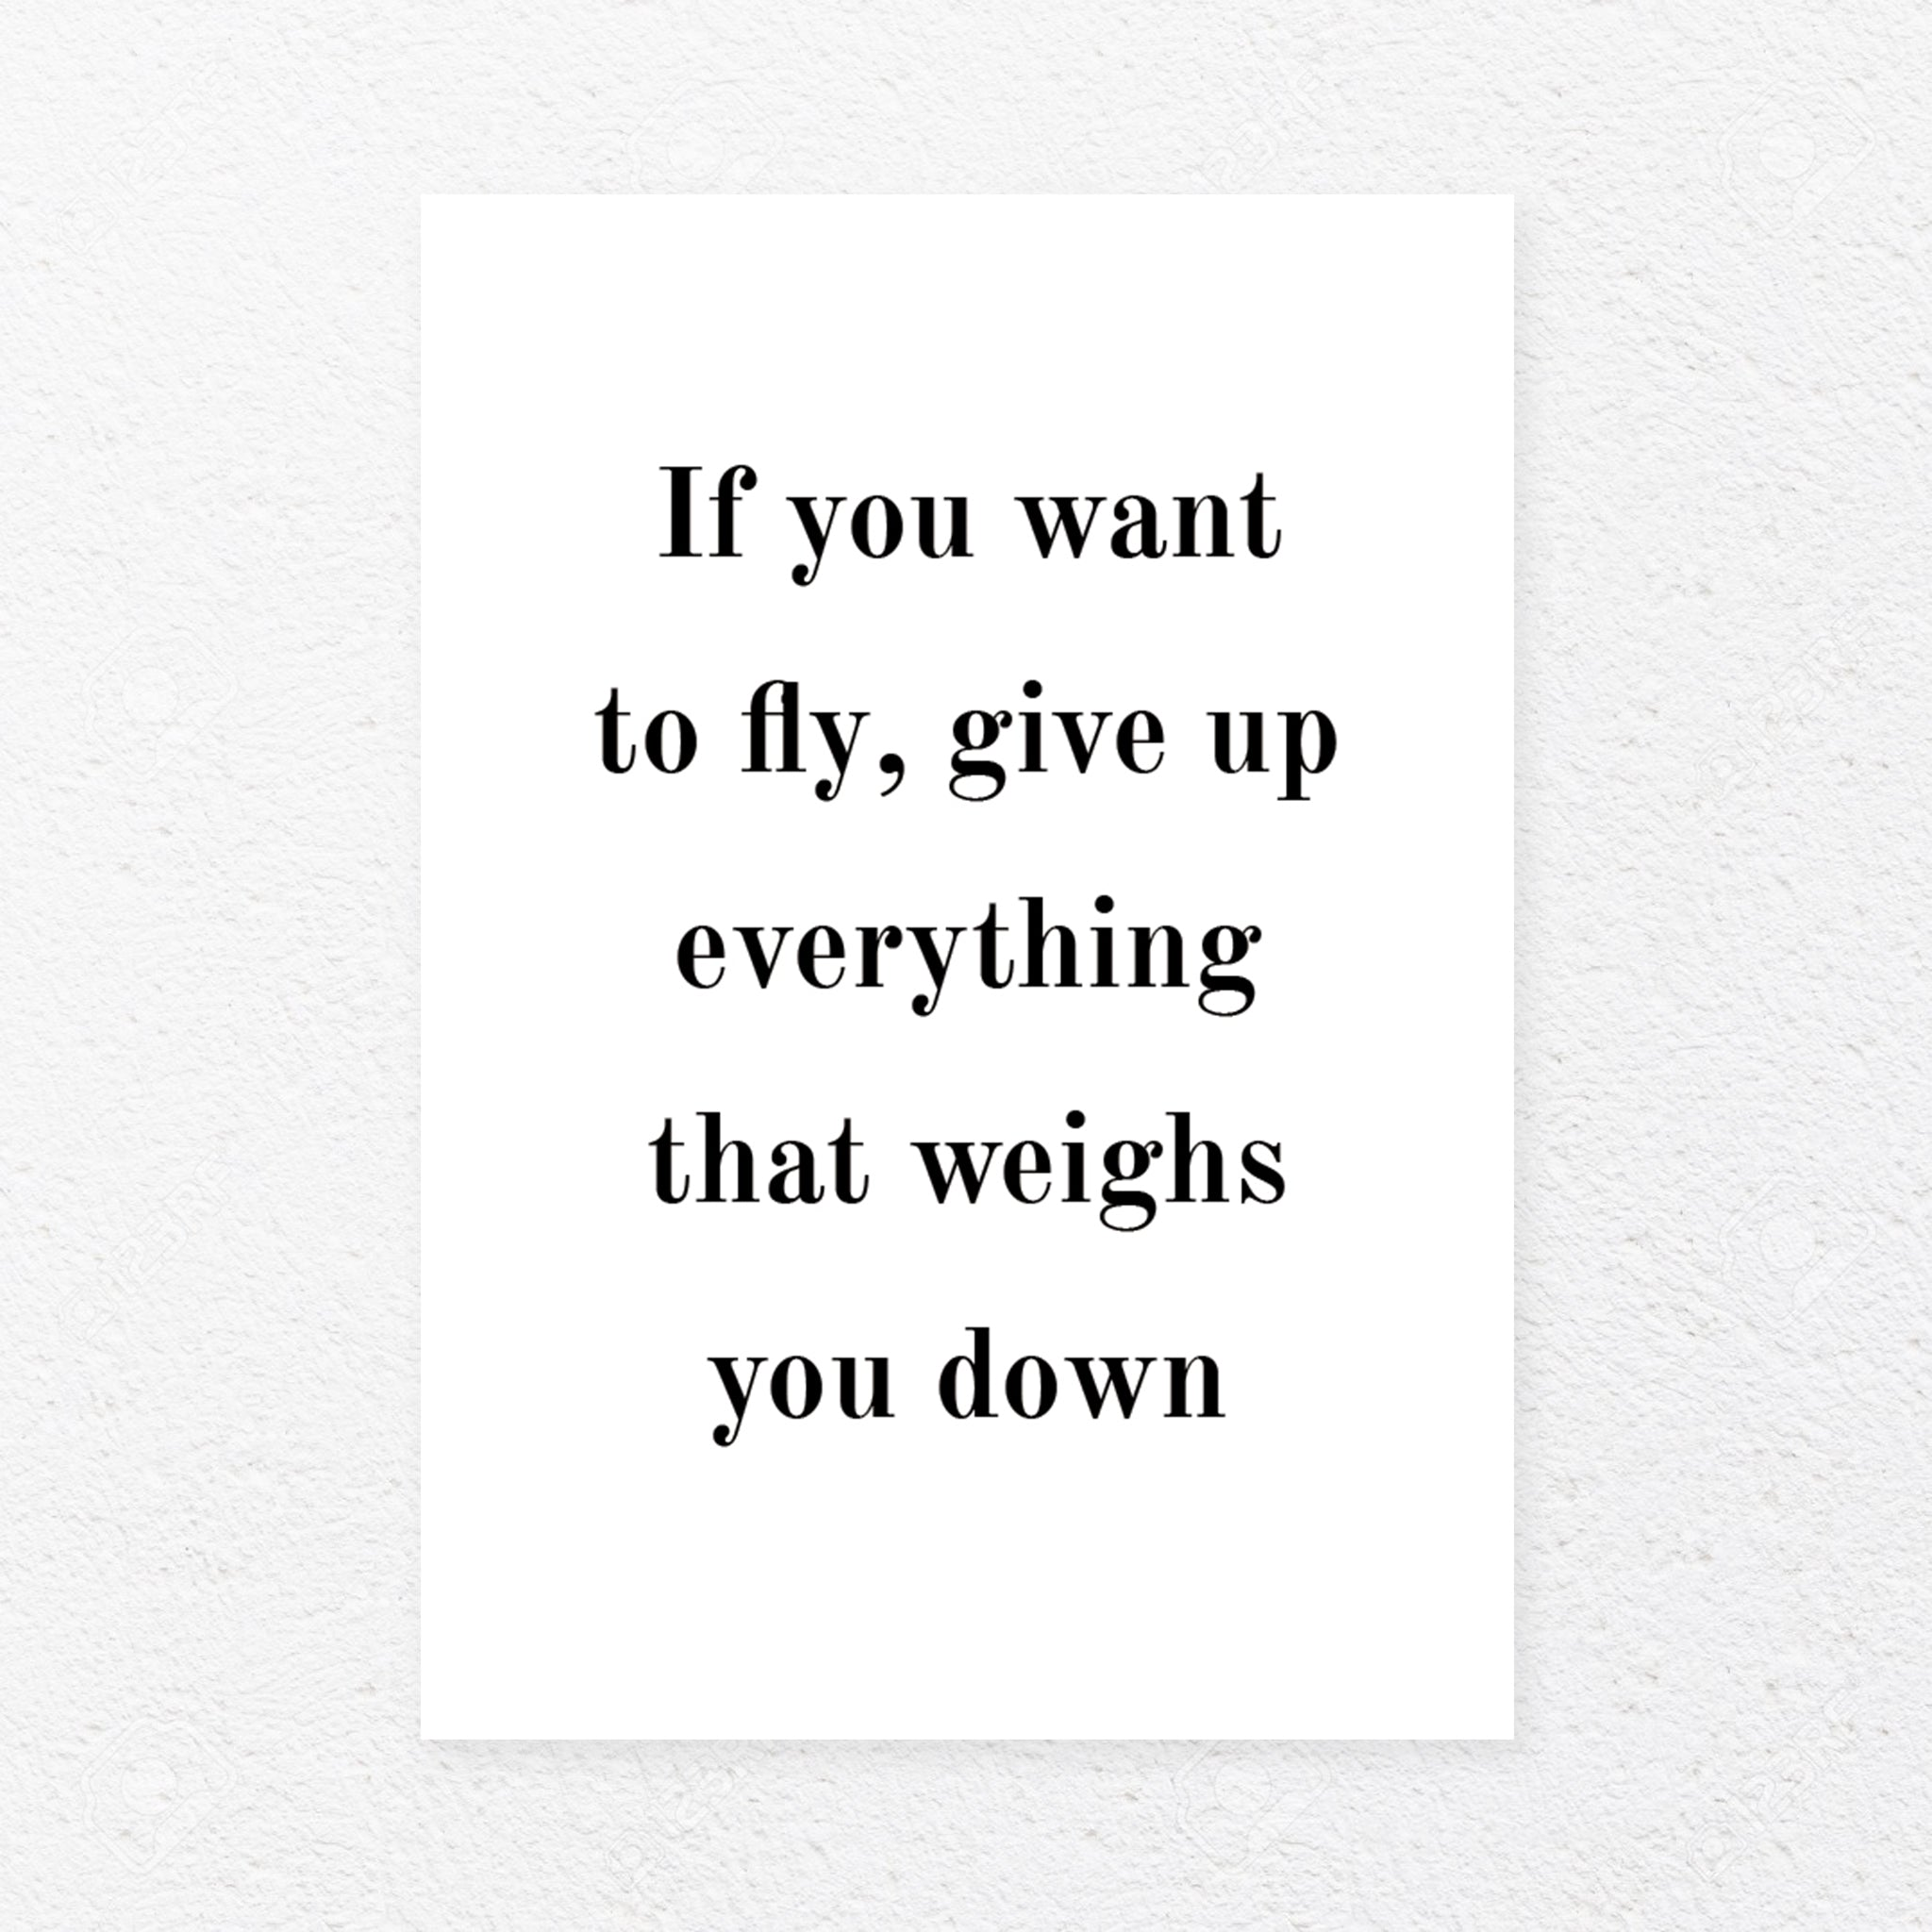 If you want to fly, give up everything that weighs you down, , Heimekoseleg